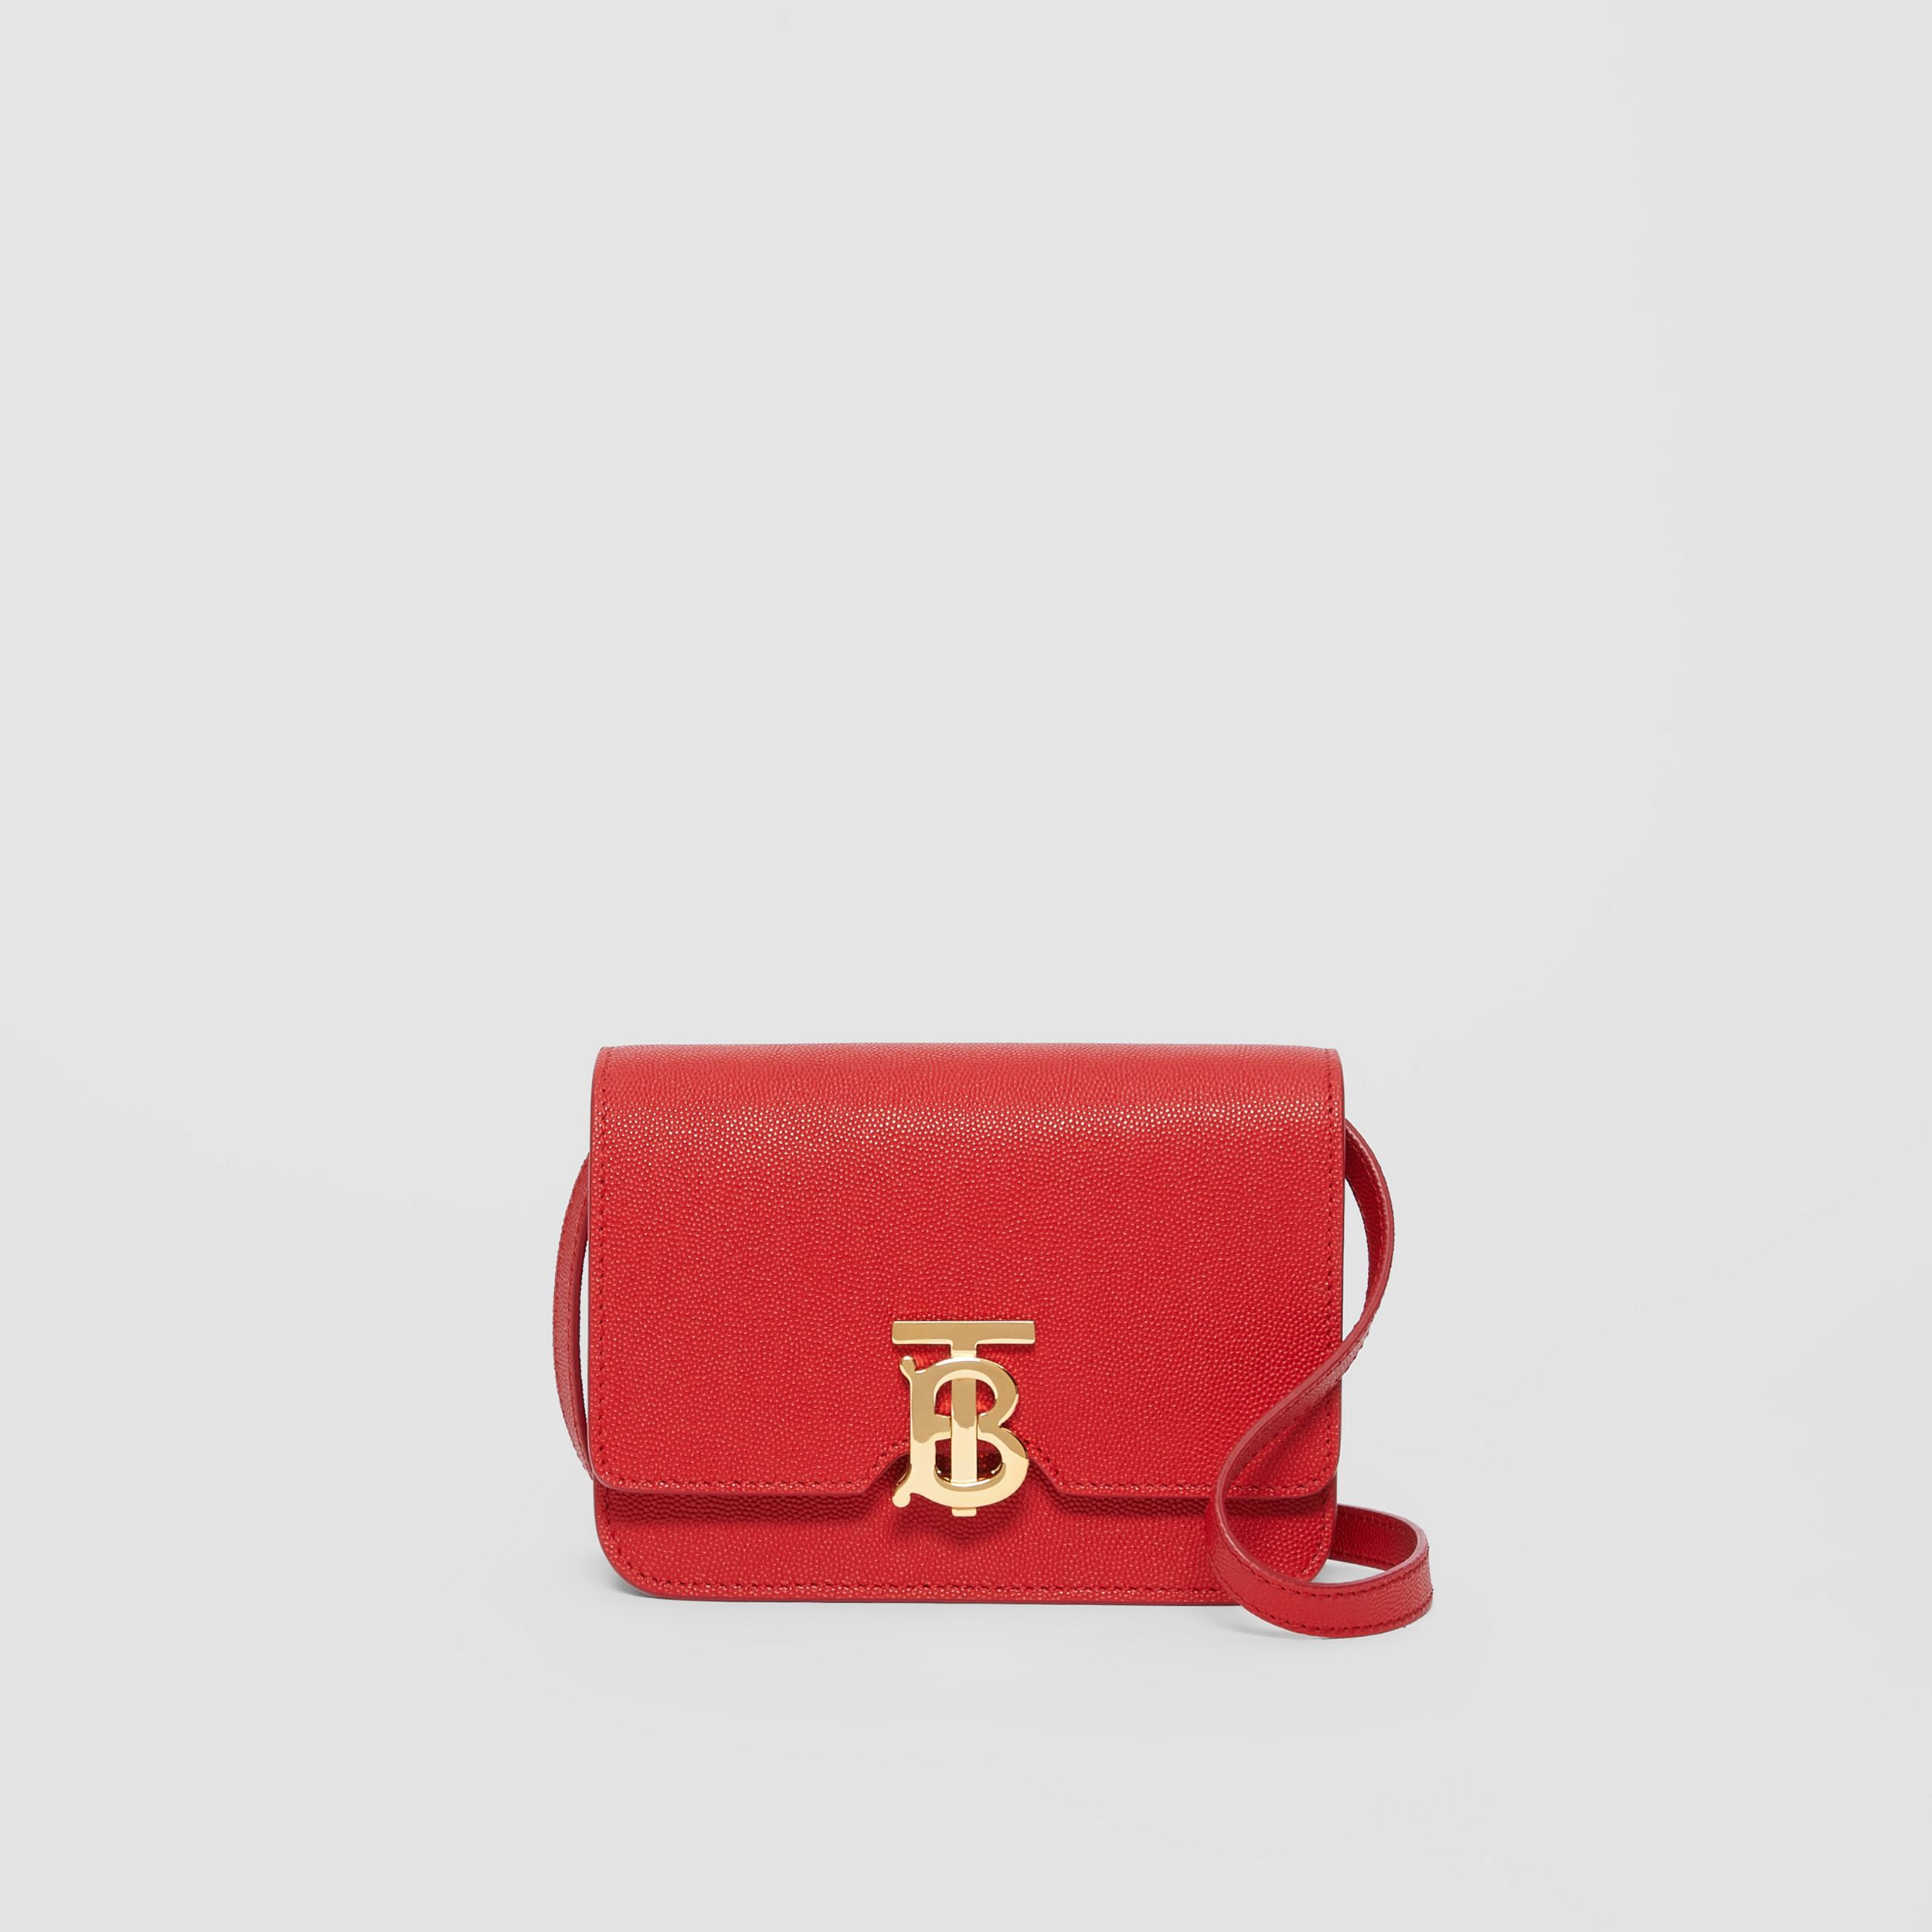 Mini Grainy Leather TB Bag in Bright Red | Burberry - 1